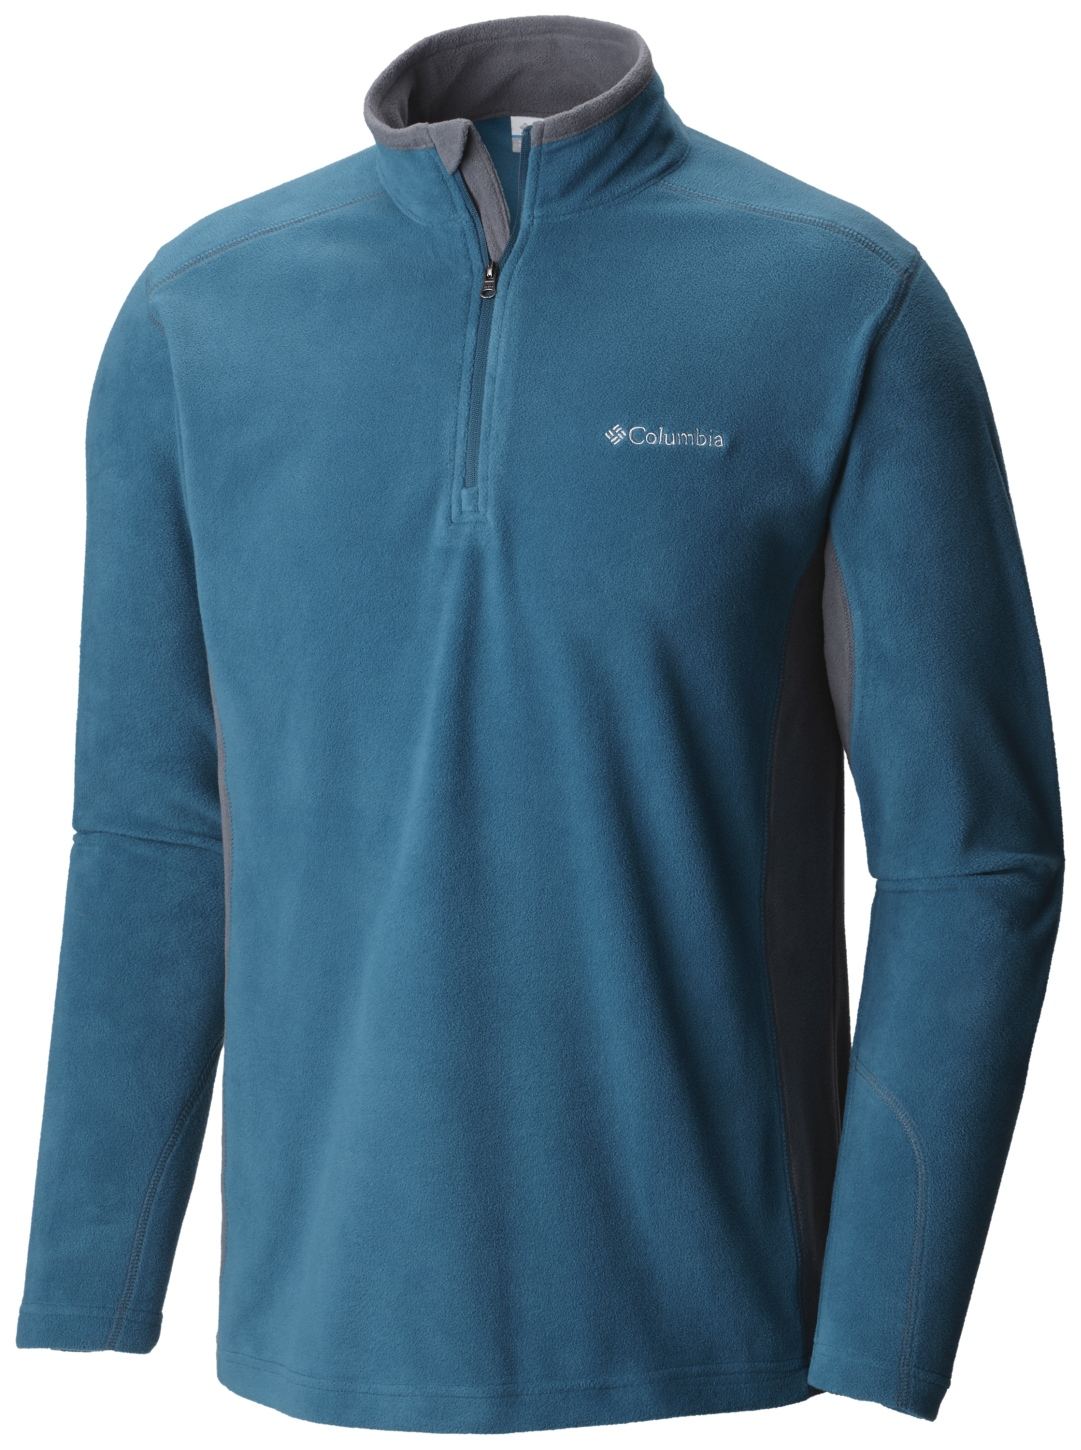 Columbia Men's Klamath Range II Half Zip Deep Water, Graphite-30